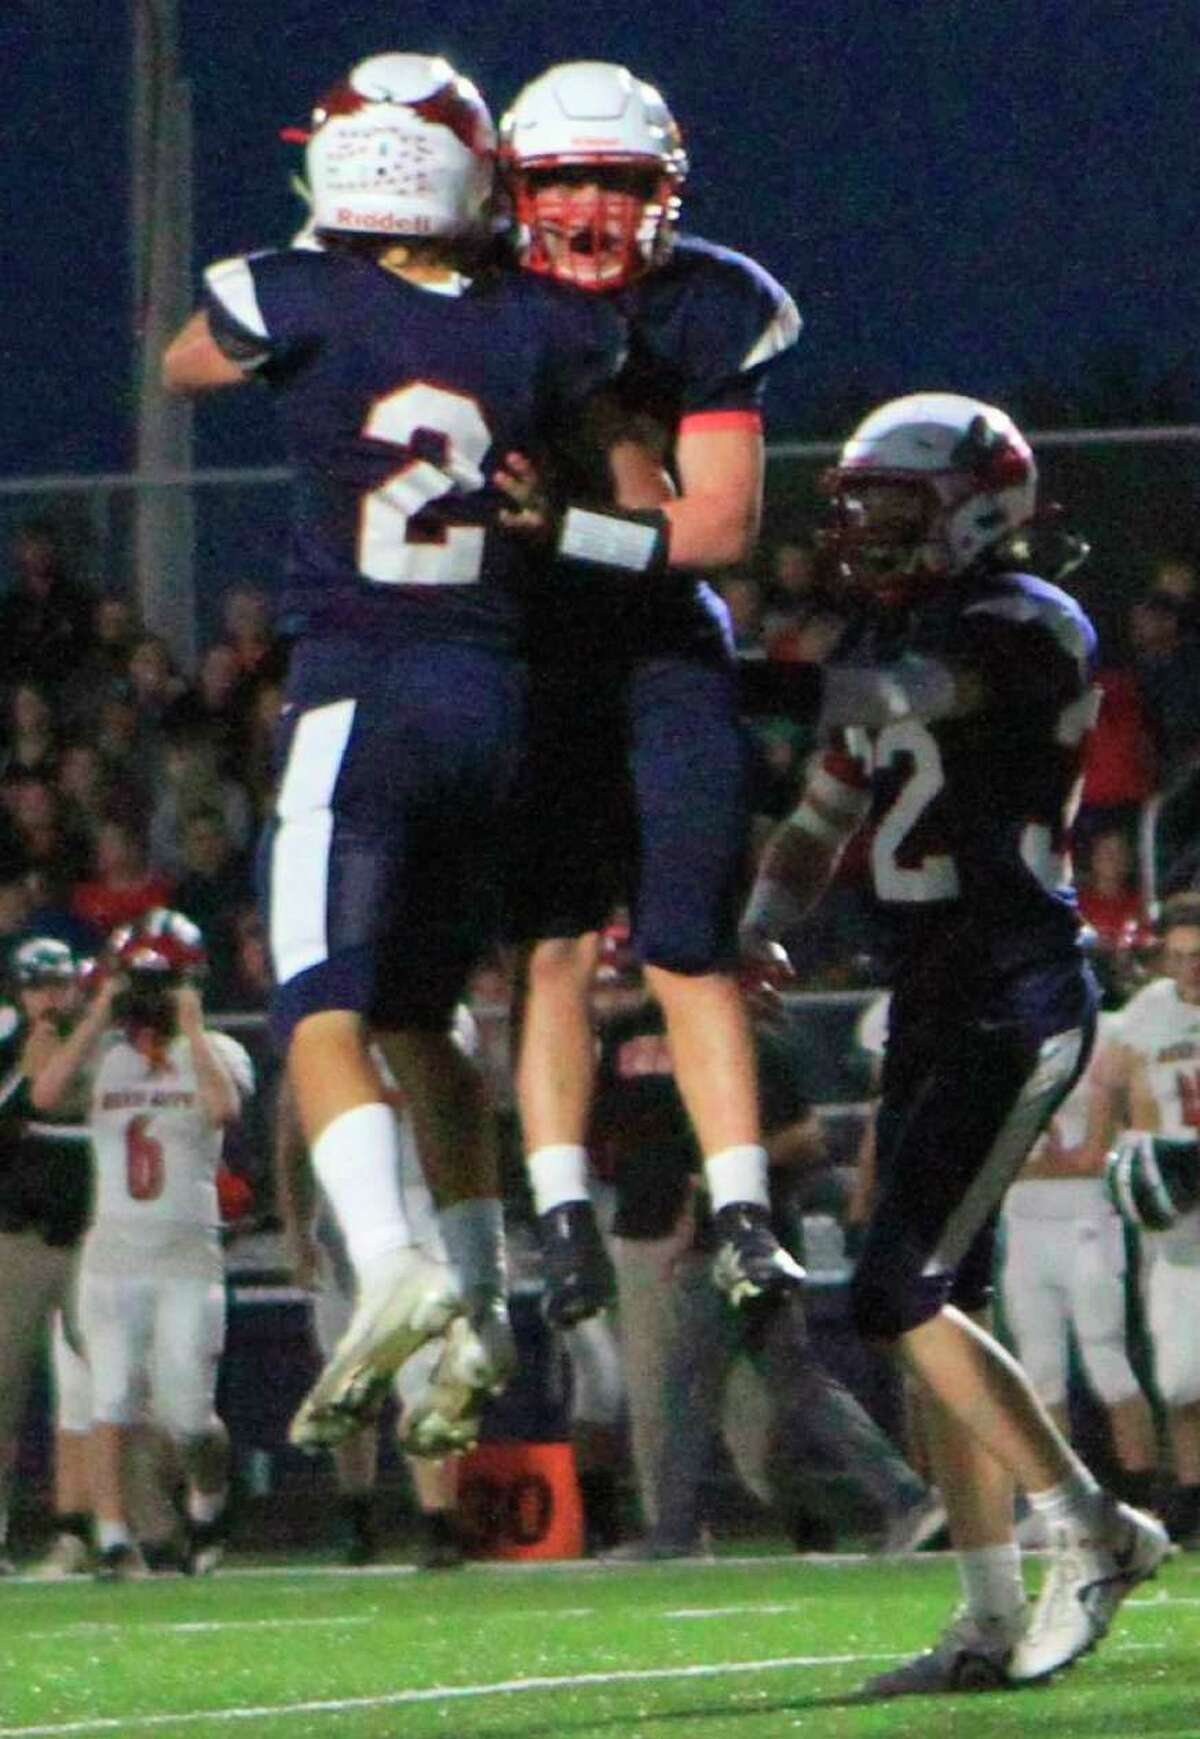 Big Rapids players, including Bradyn Foster (2), celebrate a play against Reed City on Friday. (Pioneer photo/Joe Judd)